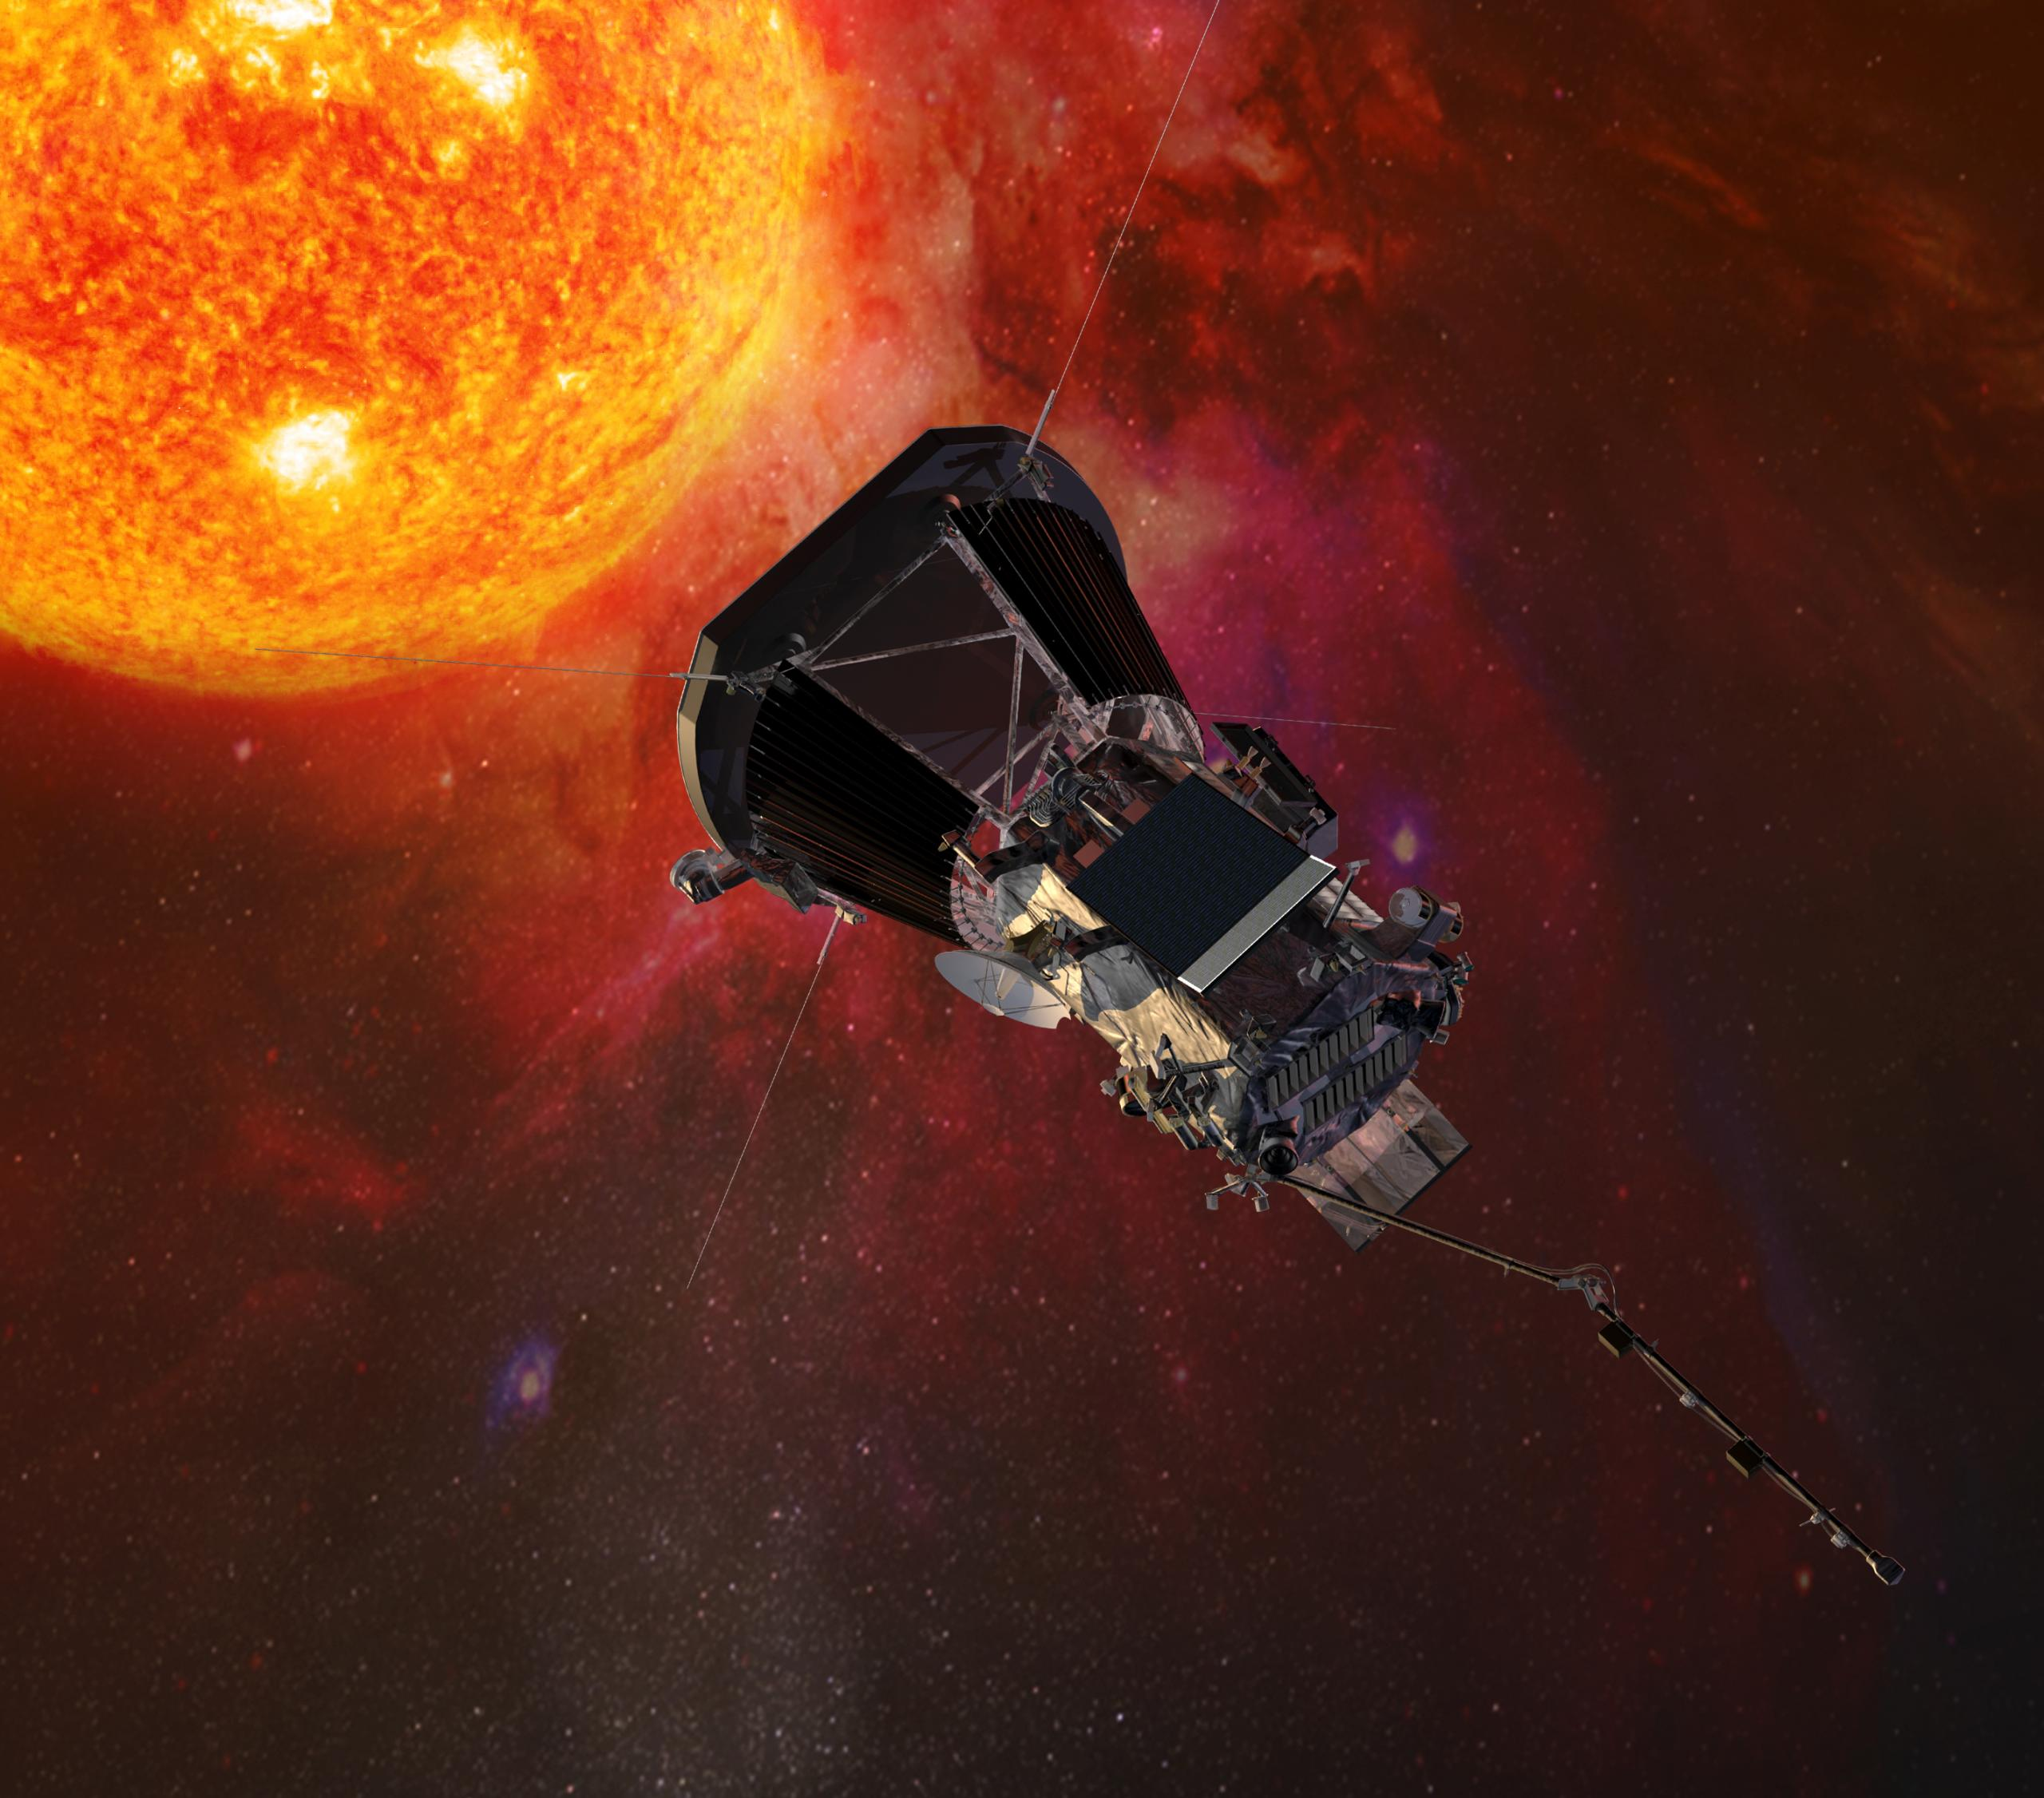 Artist concept of Parker Solar Probe spacecraft near the sun